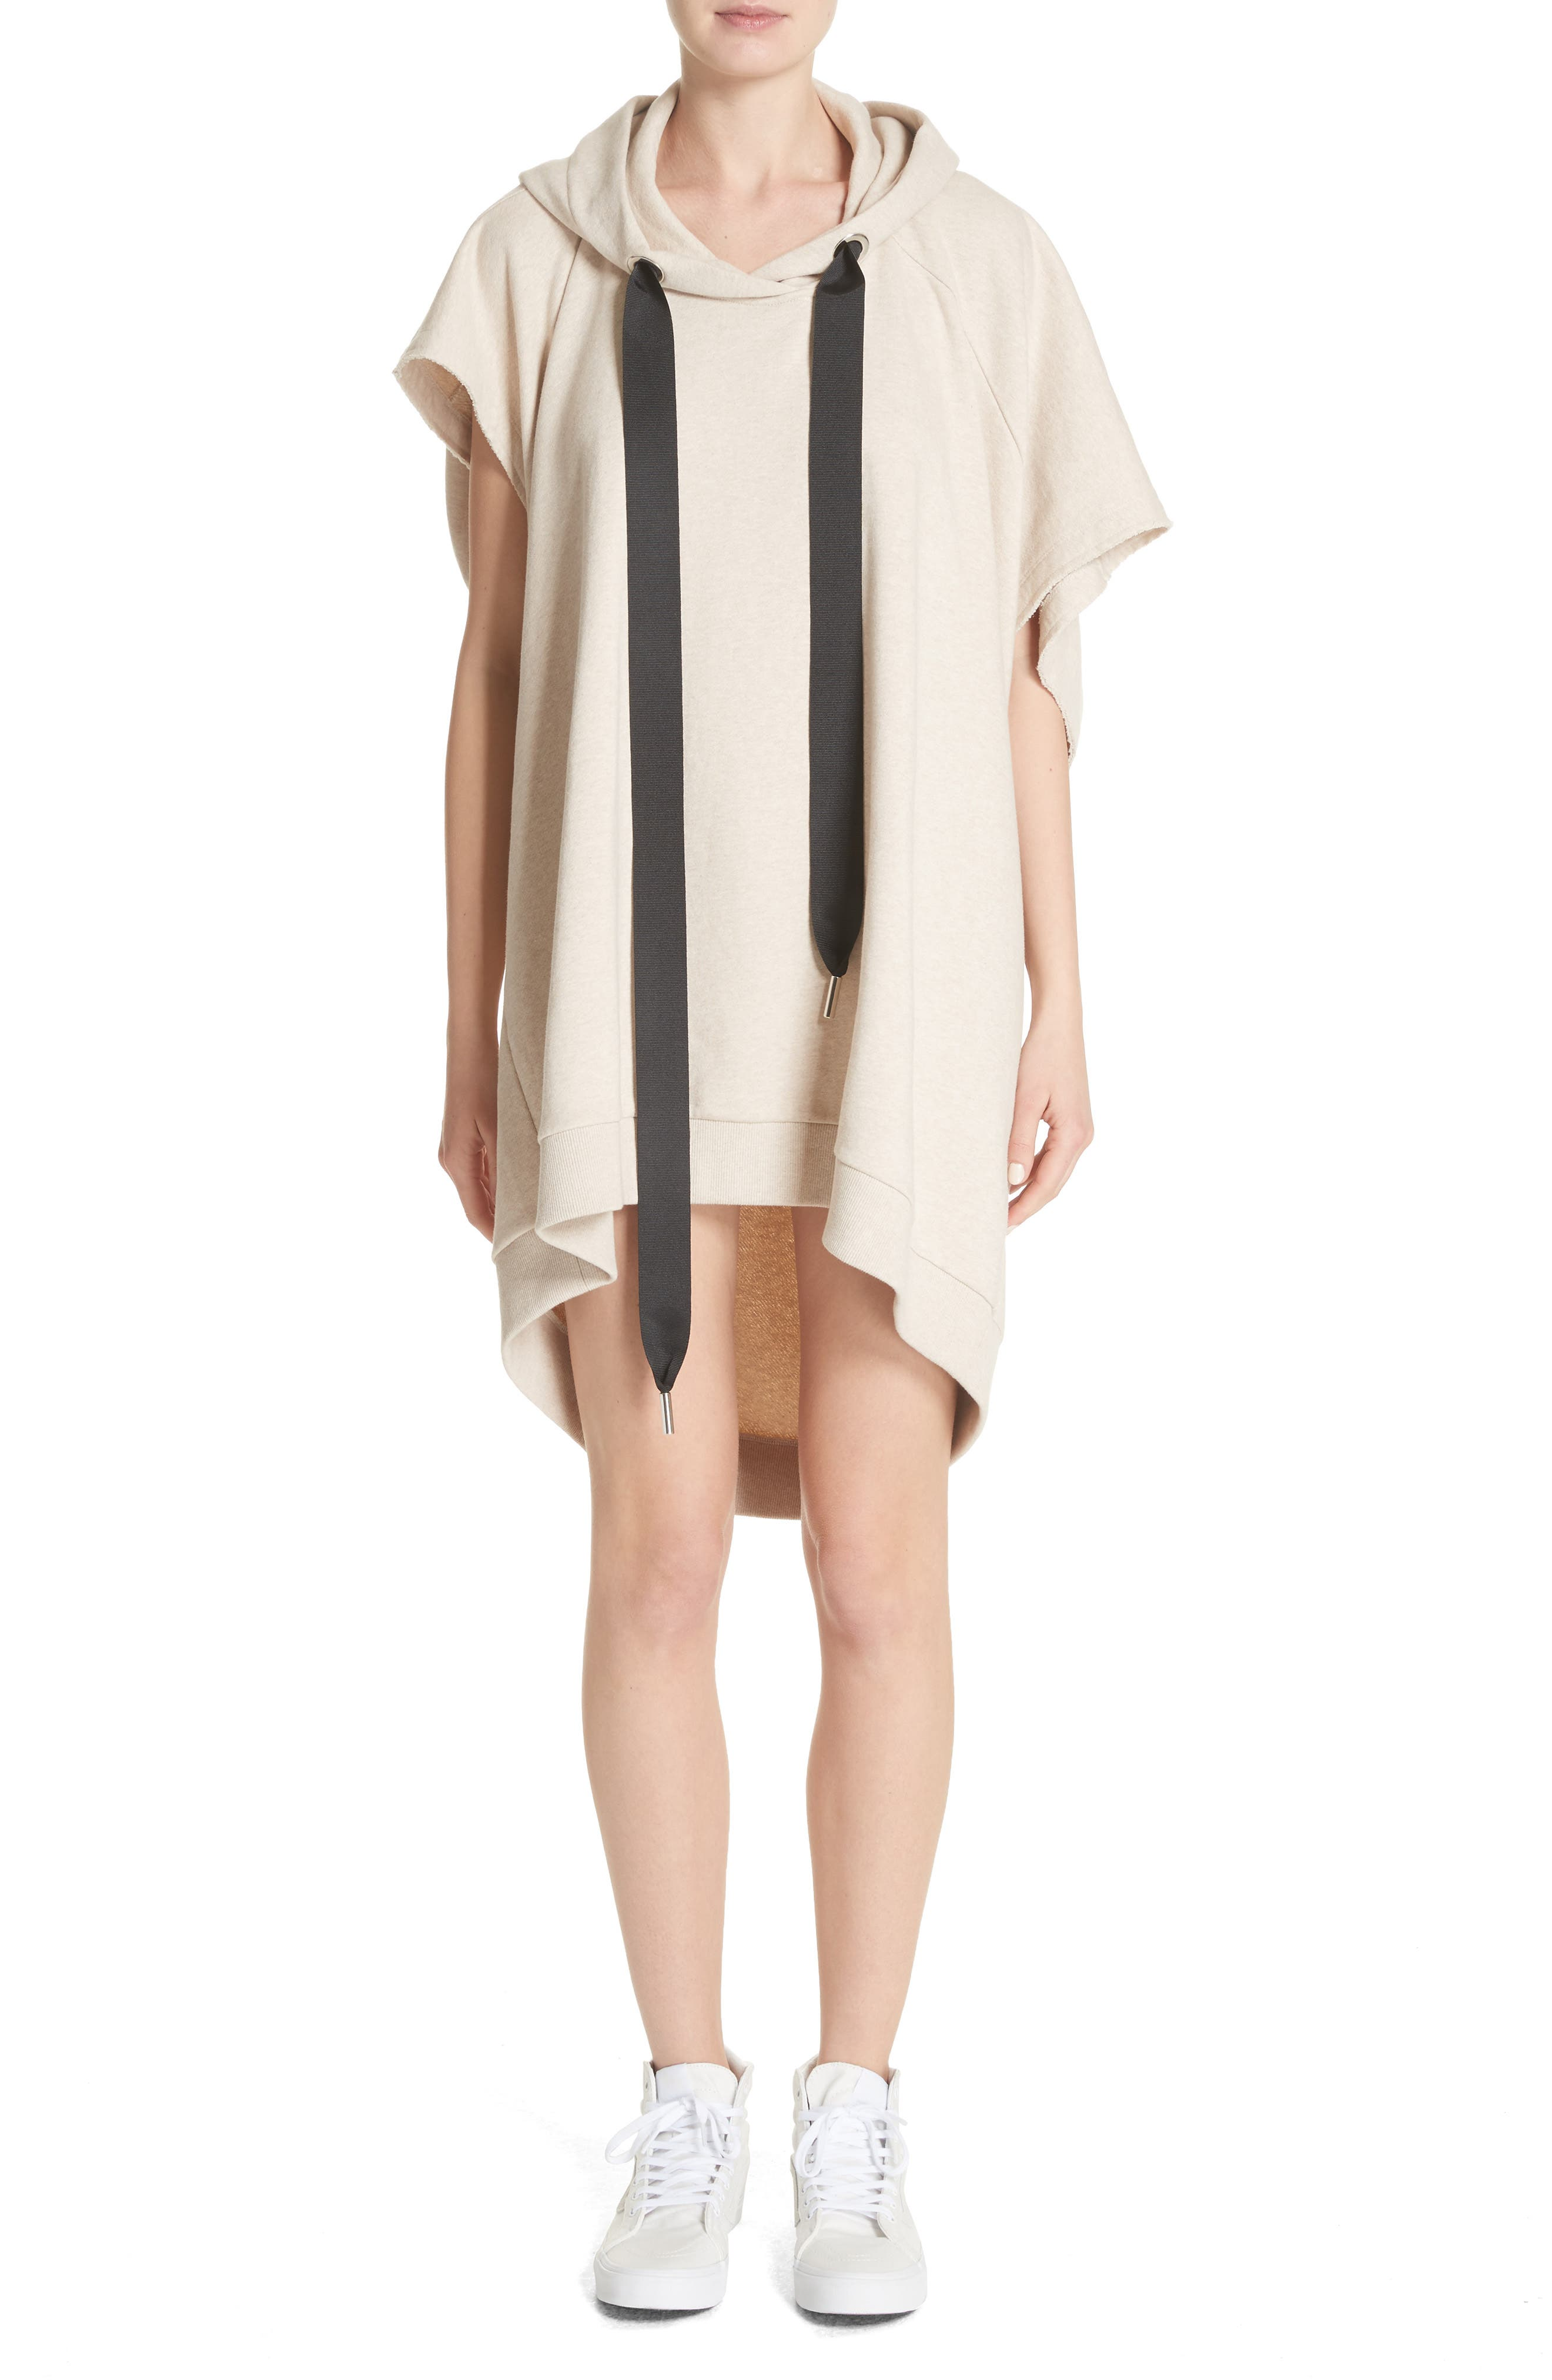 Marques'Almeida Asymmetrical Cap Sleeve Hoodie,                         Main,                         color, Beige Melange